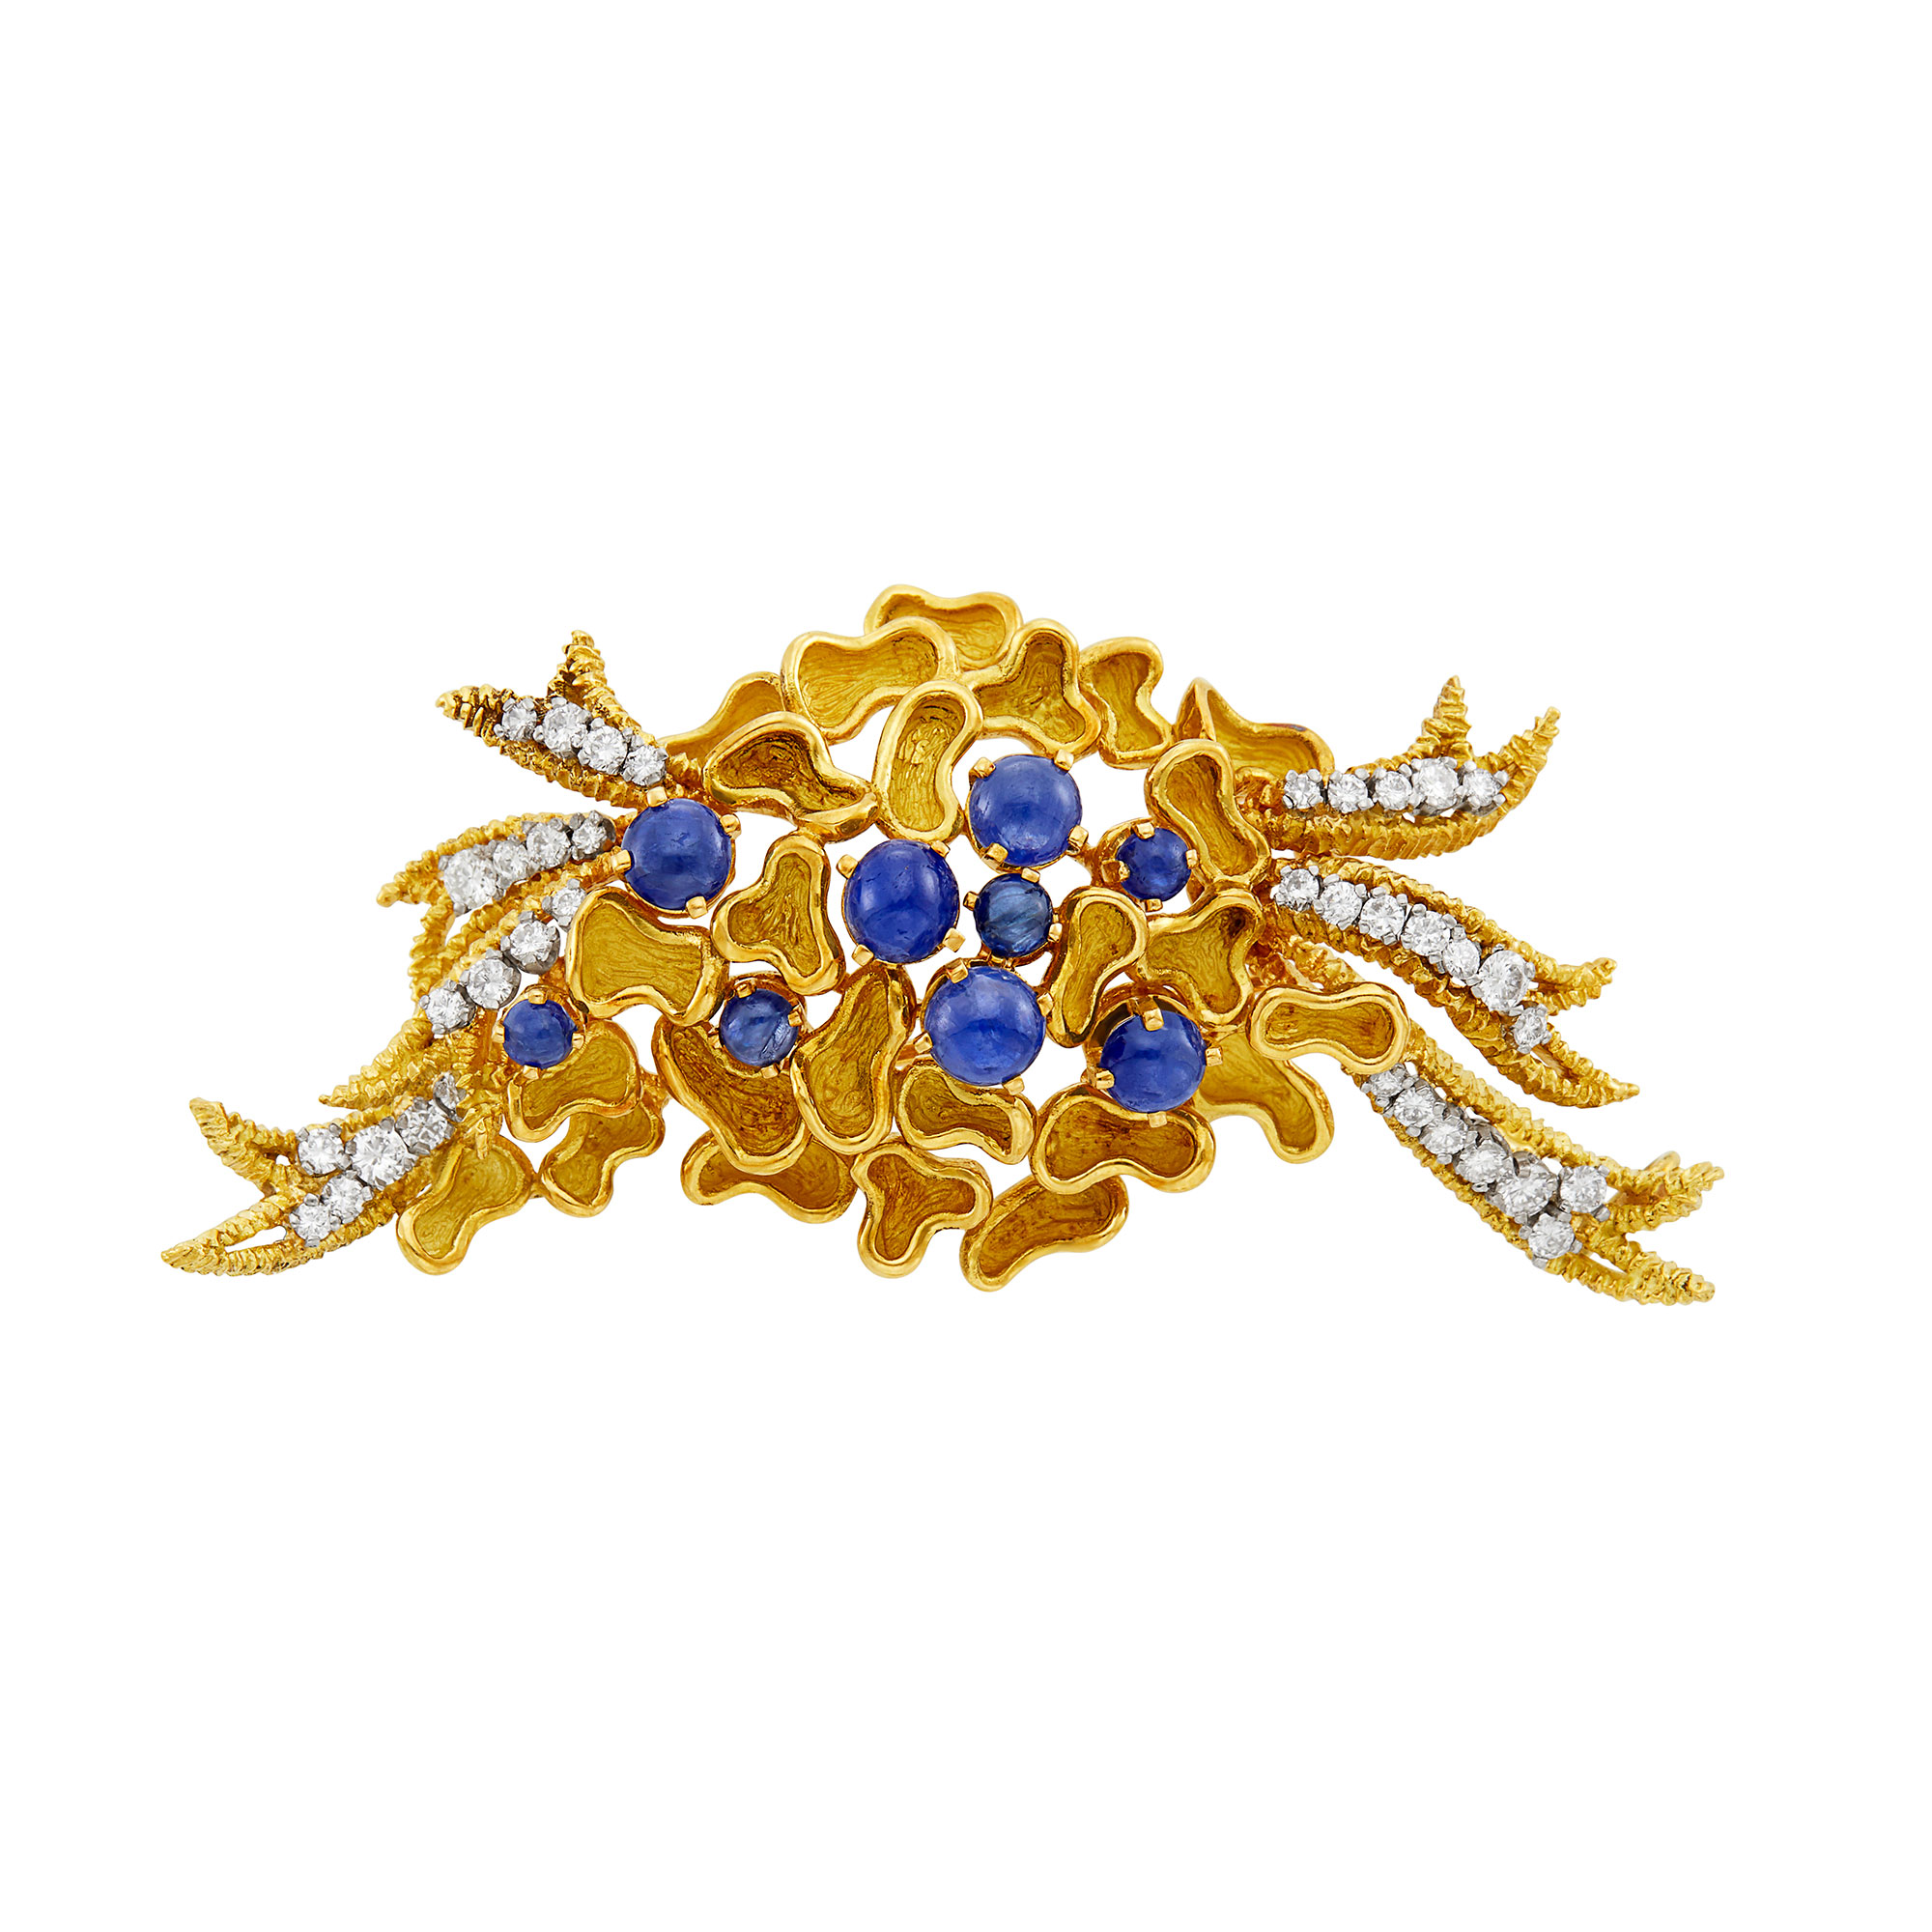 Lot image - Gold, Cabochon Sapphire and Diamond Clip-Brooch, France